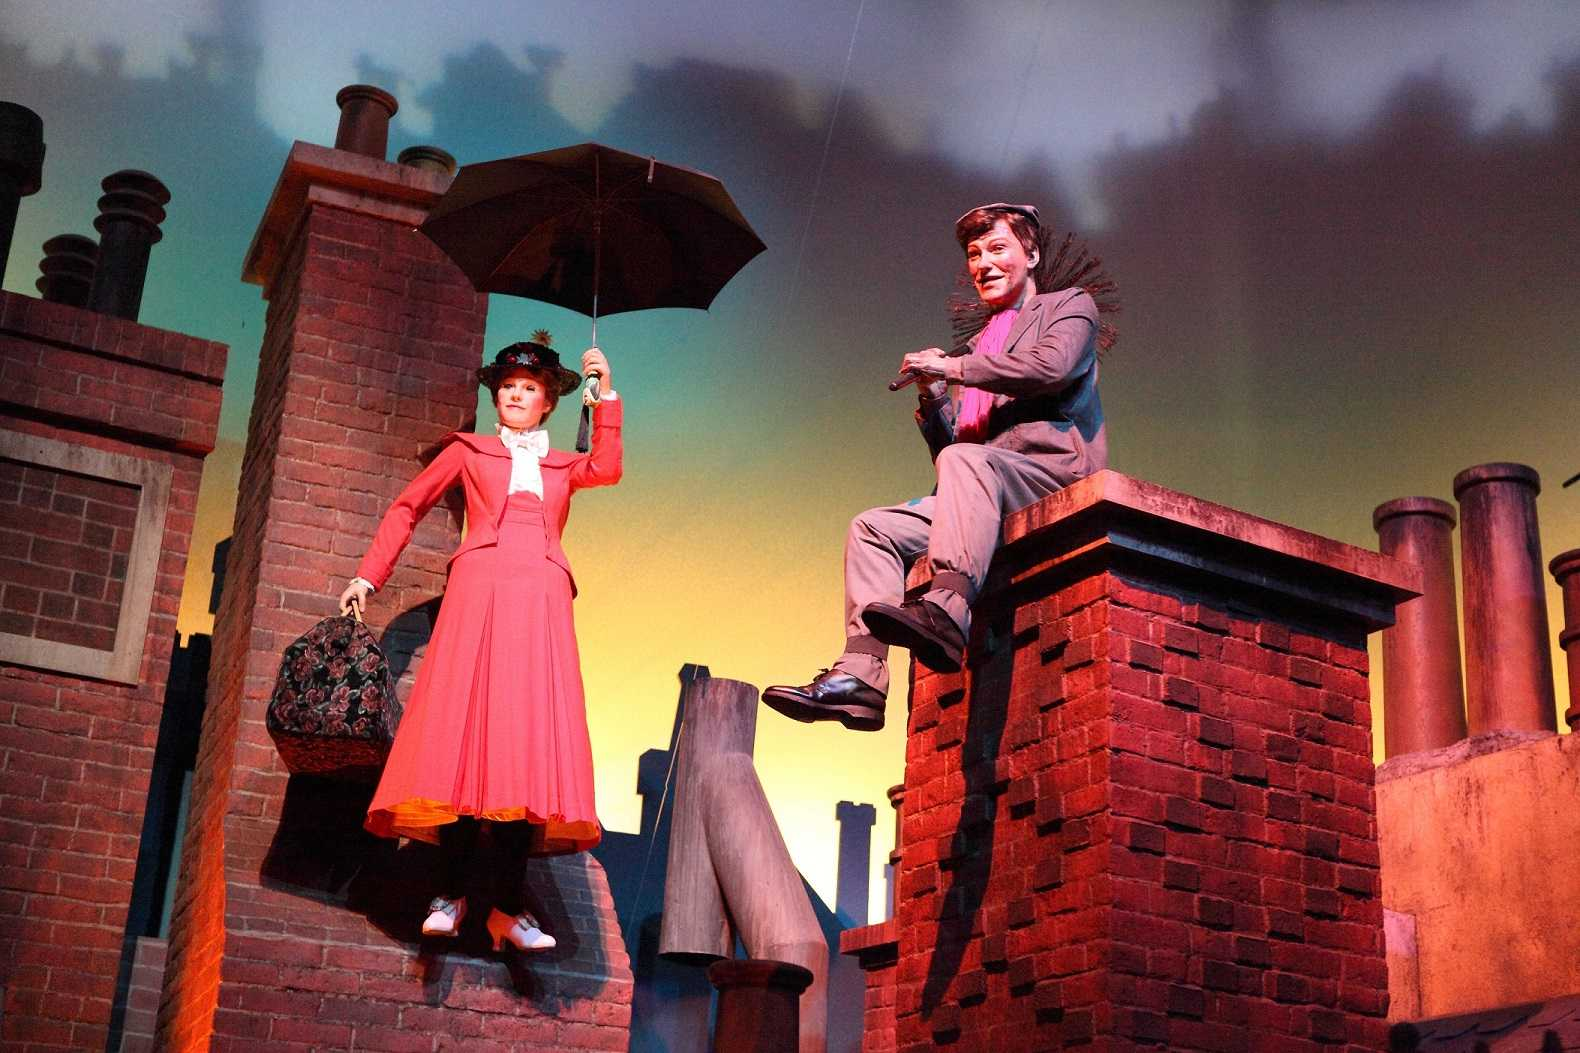 Wheelock Family Theatre in Boston captured the magic that is Mary Poppins.